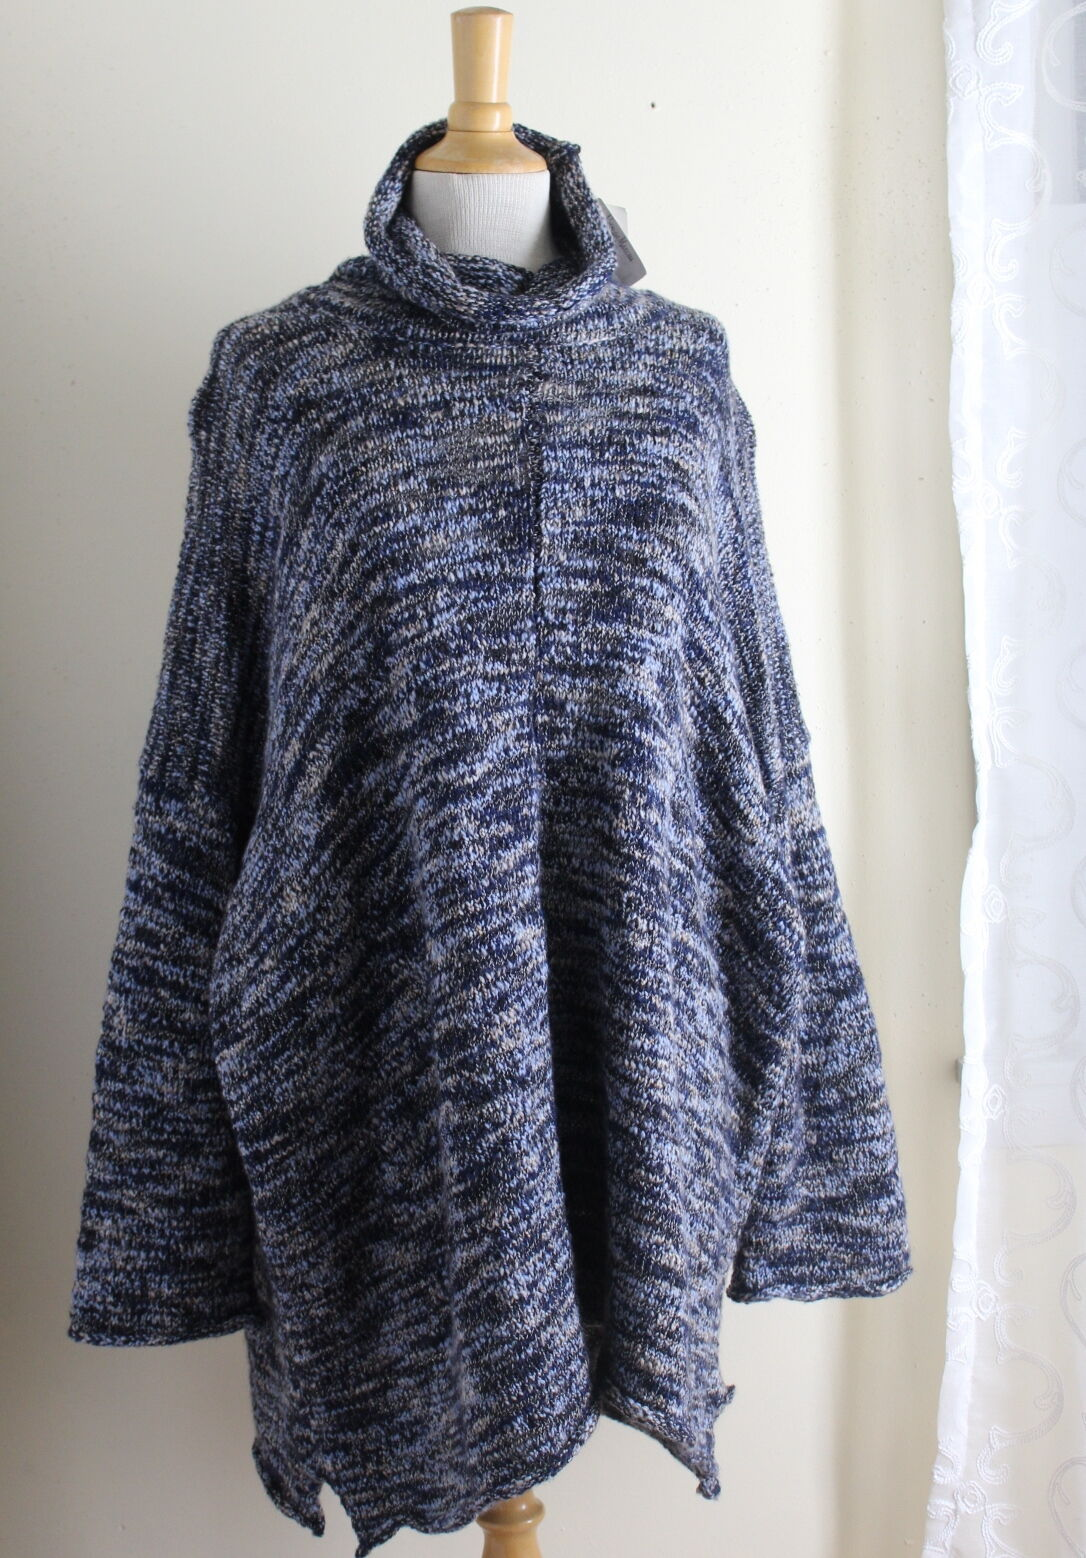 NWT Eskandar Plush Luxurious bluee Mix Merino Wool Monks Collar Tunic Sweater O S